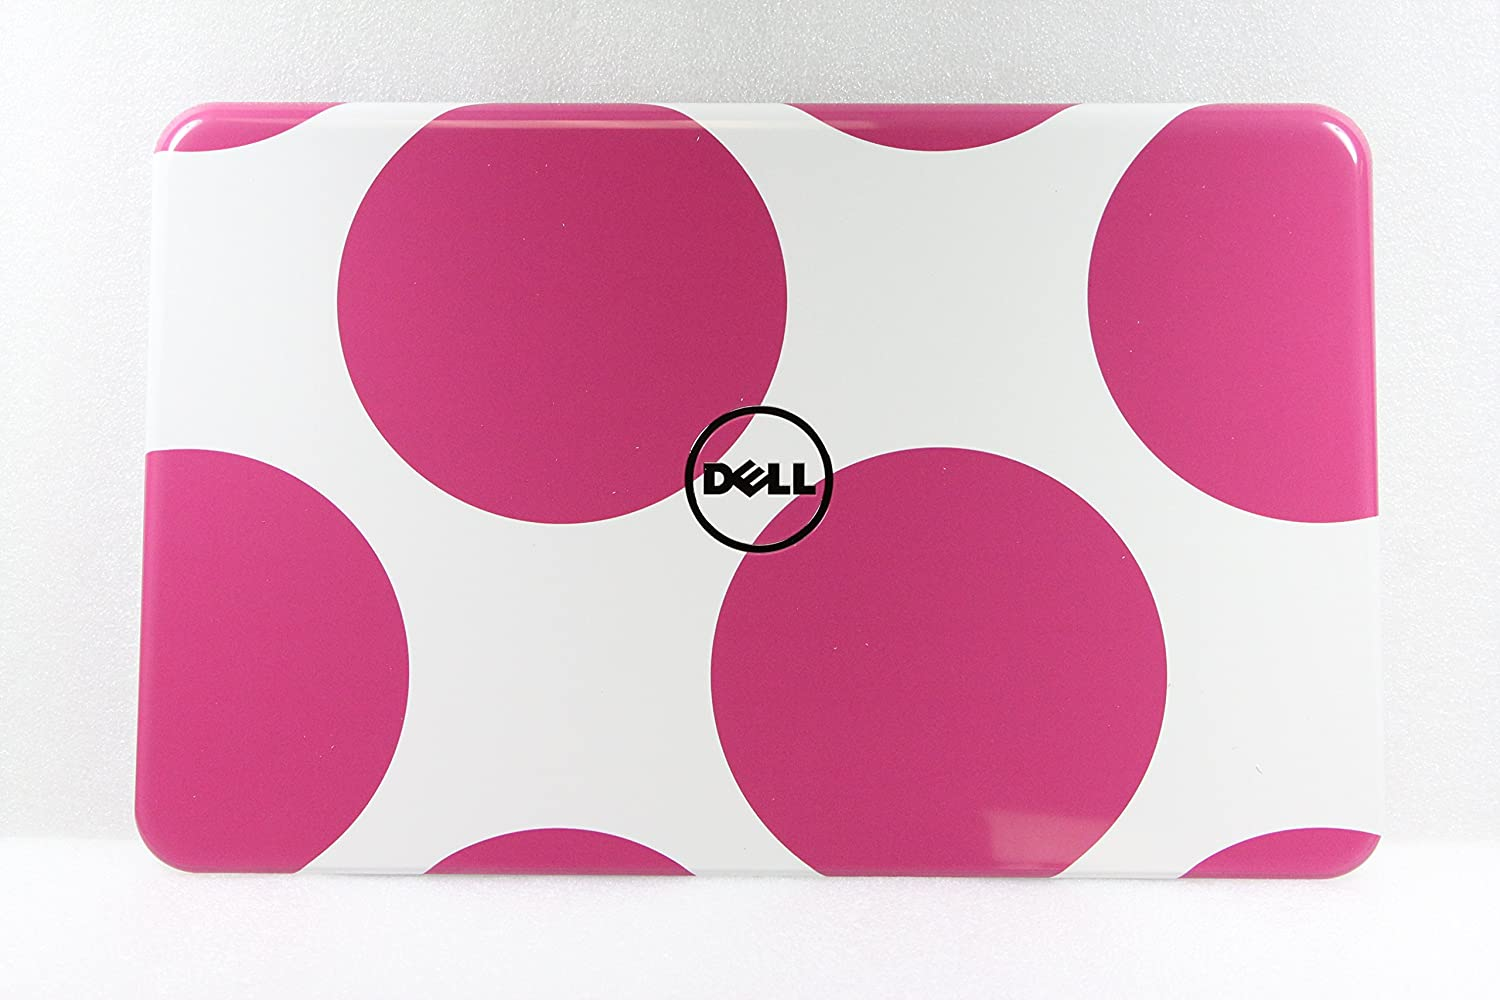 Polka Dot Pink LCD Back Cover For Dell Inspiron 15R N5110 3R6FF CN-03R6FF 03R6FF